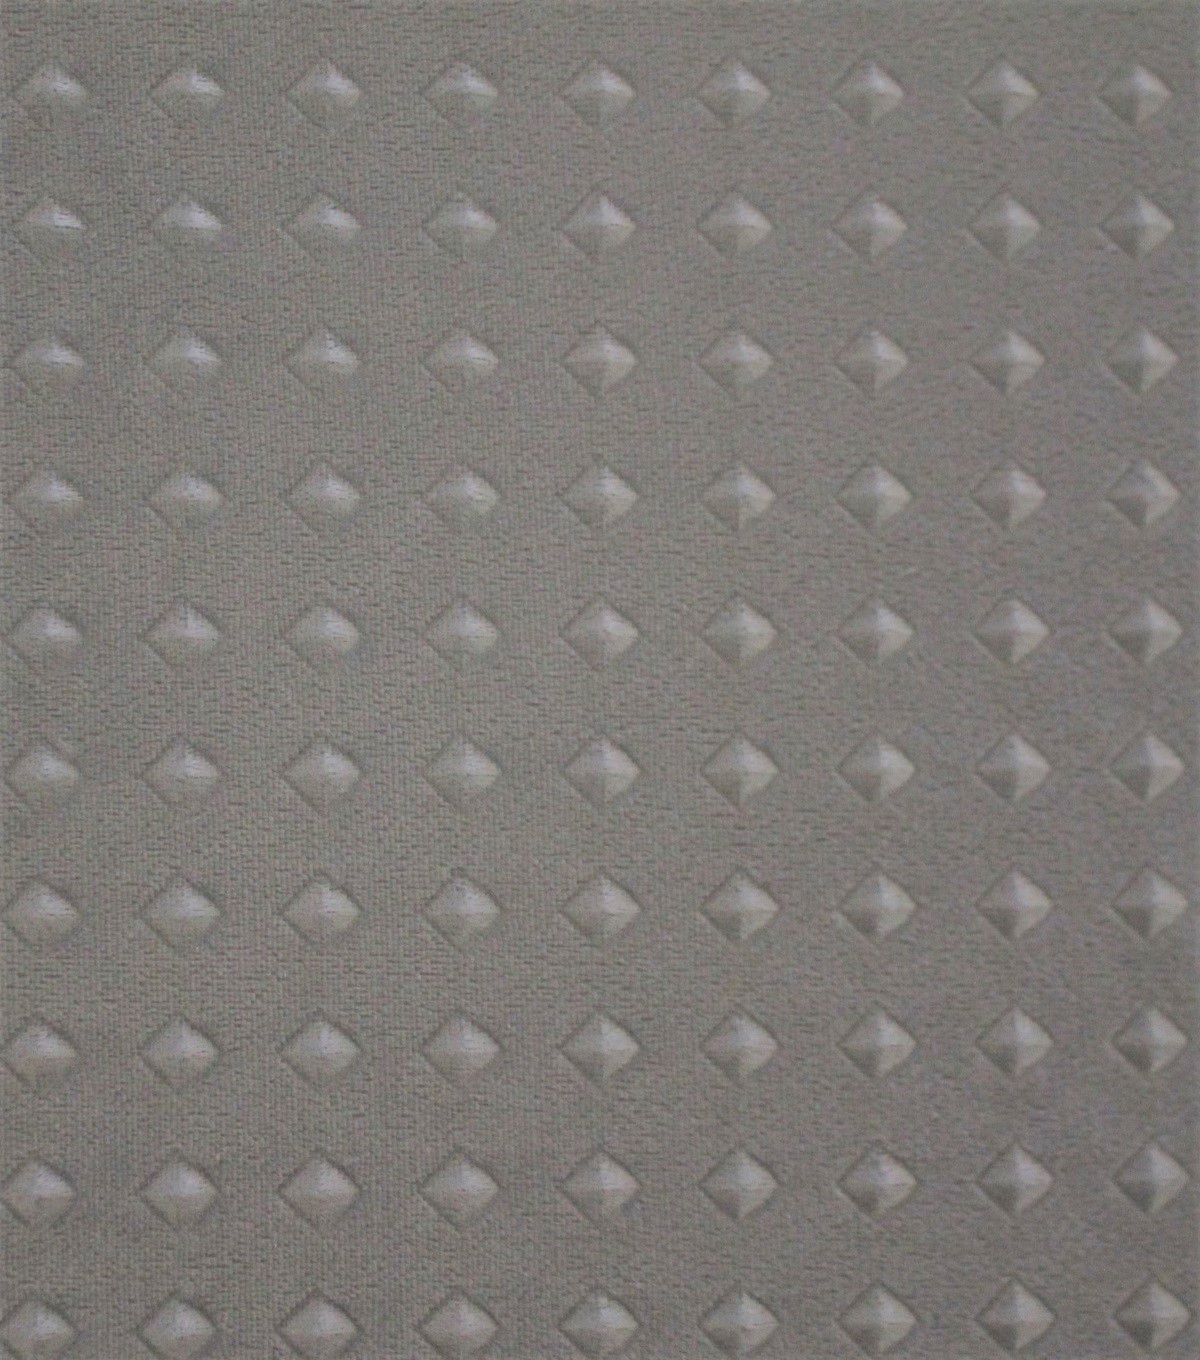 The Witching Hour Halloween Fabric 58\u0022-Armor Like Embossed Panne